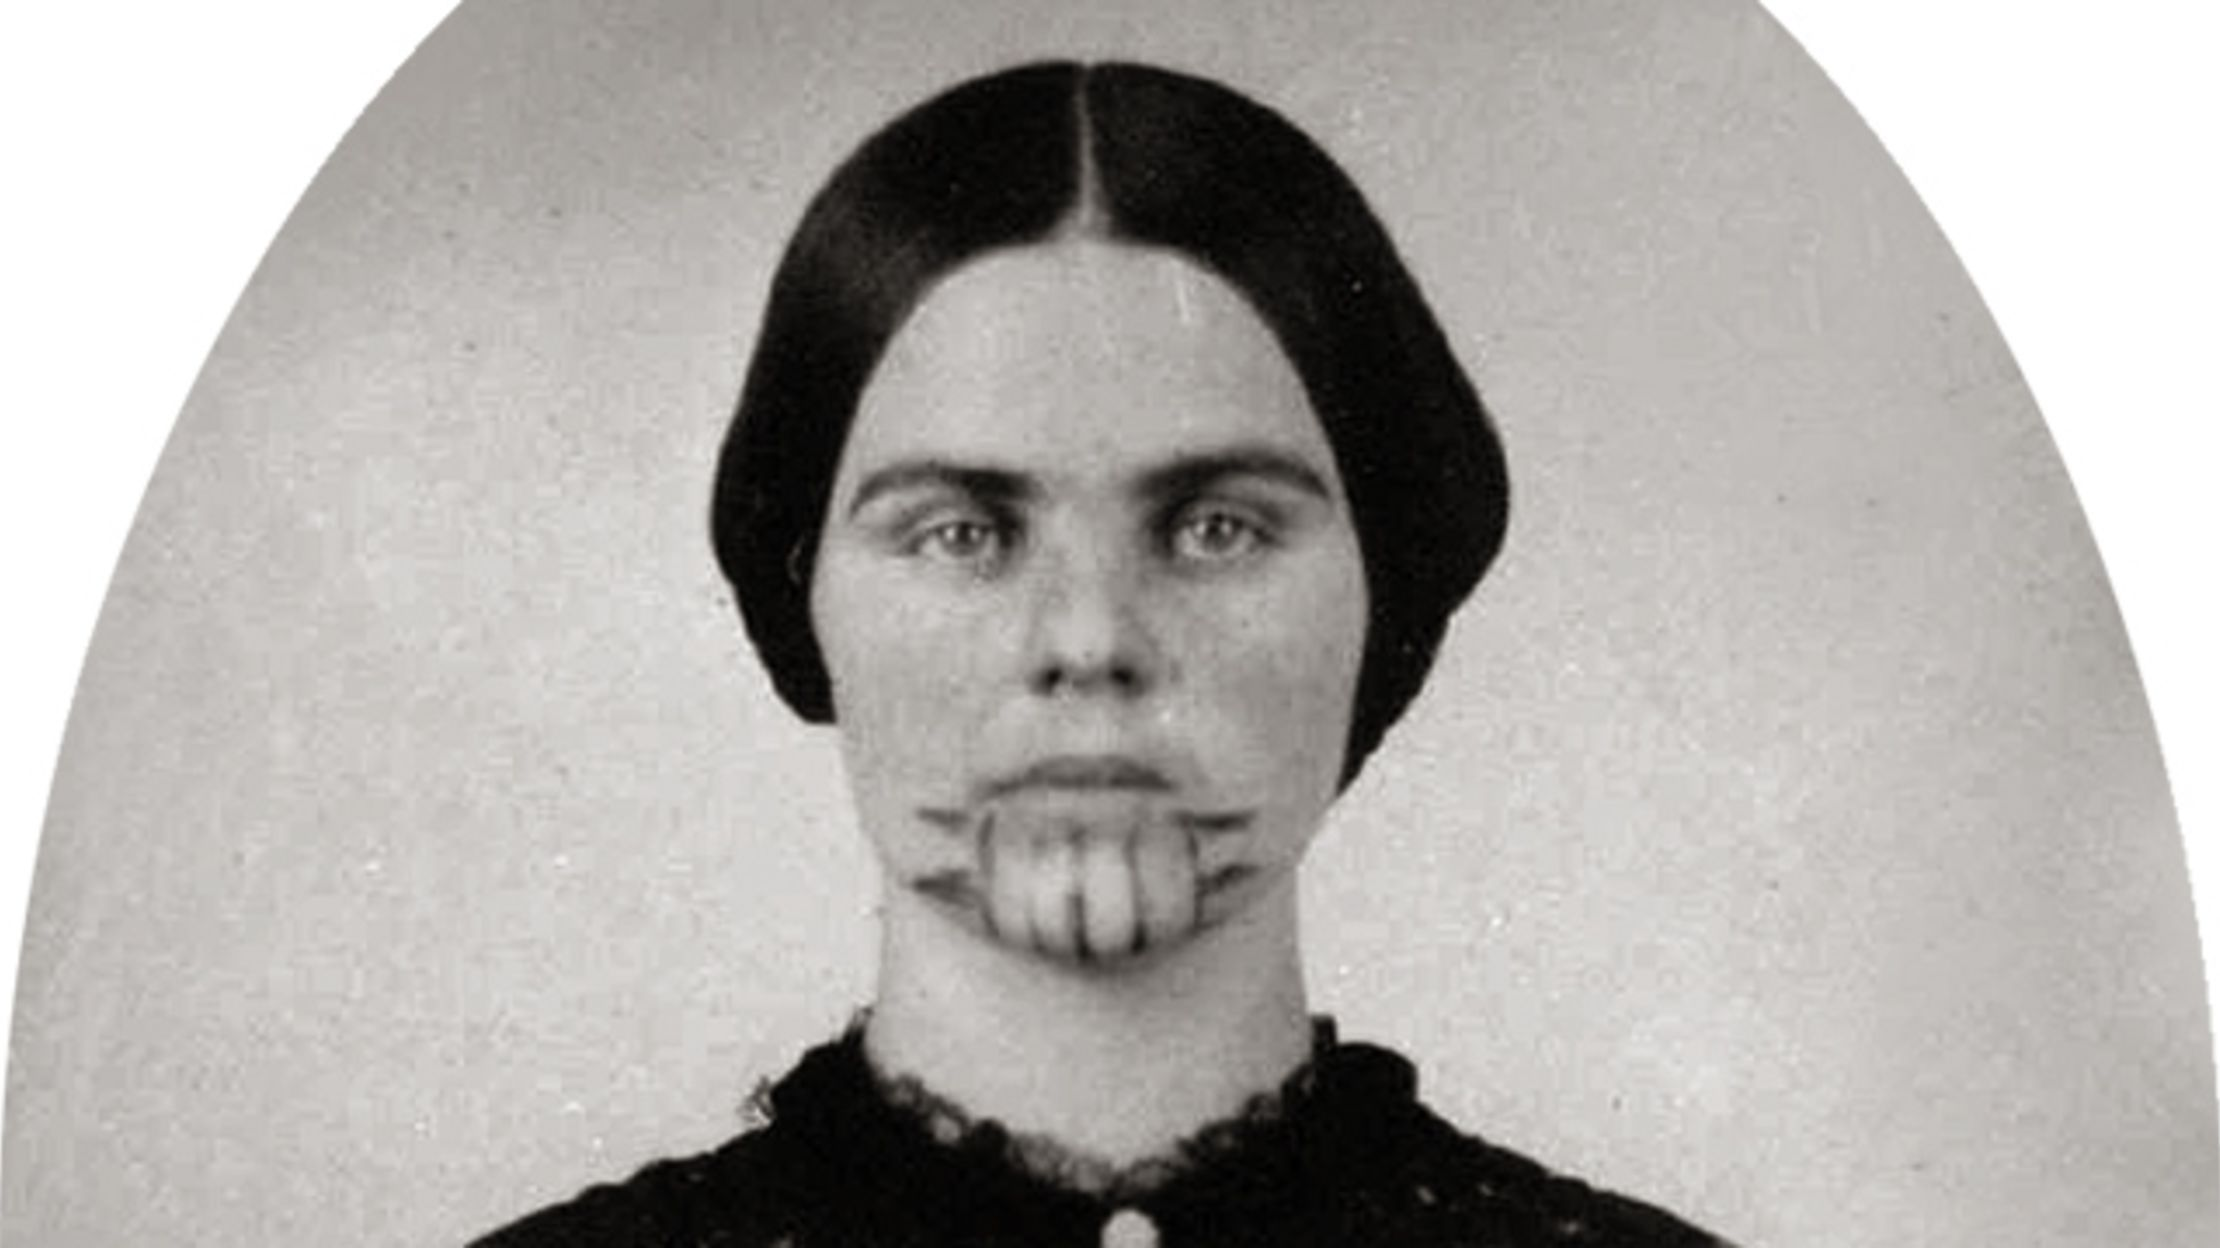 Olive Oatman, the Pioneer Girl Abducted by Native Americans Who